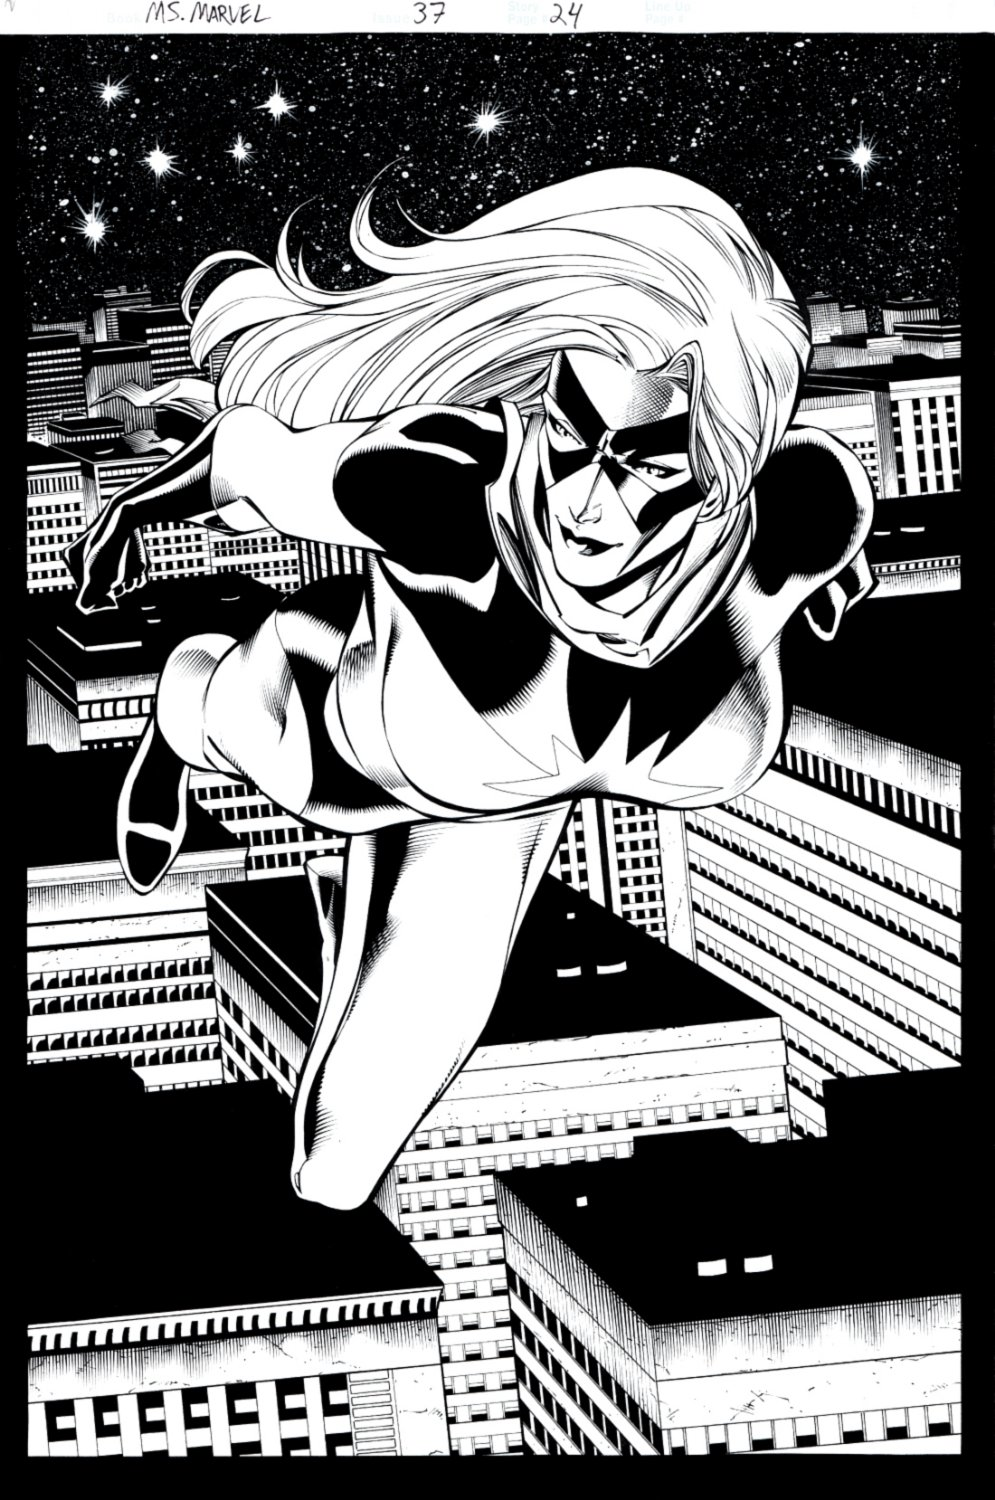 Ms Marvel #37 p 24 SPLASH (SOLD LIVE ON 'DUELING DEALERS OF COMIC ART' EPISODE #10 PODCAST ON 3-31-2021 (RE-WATCH OUR LIVE ART SELLING PODCAST HERE!)